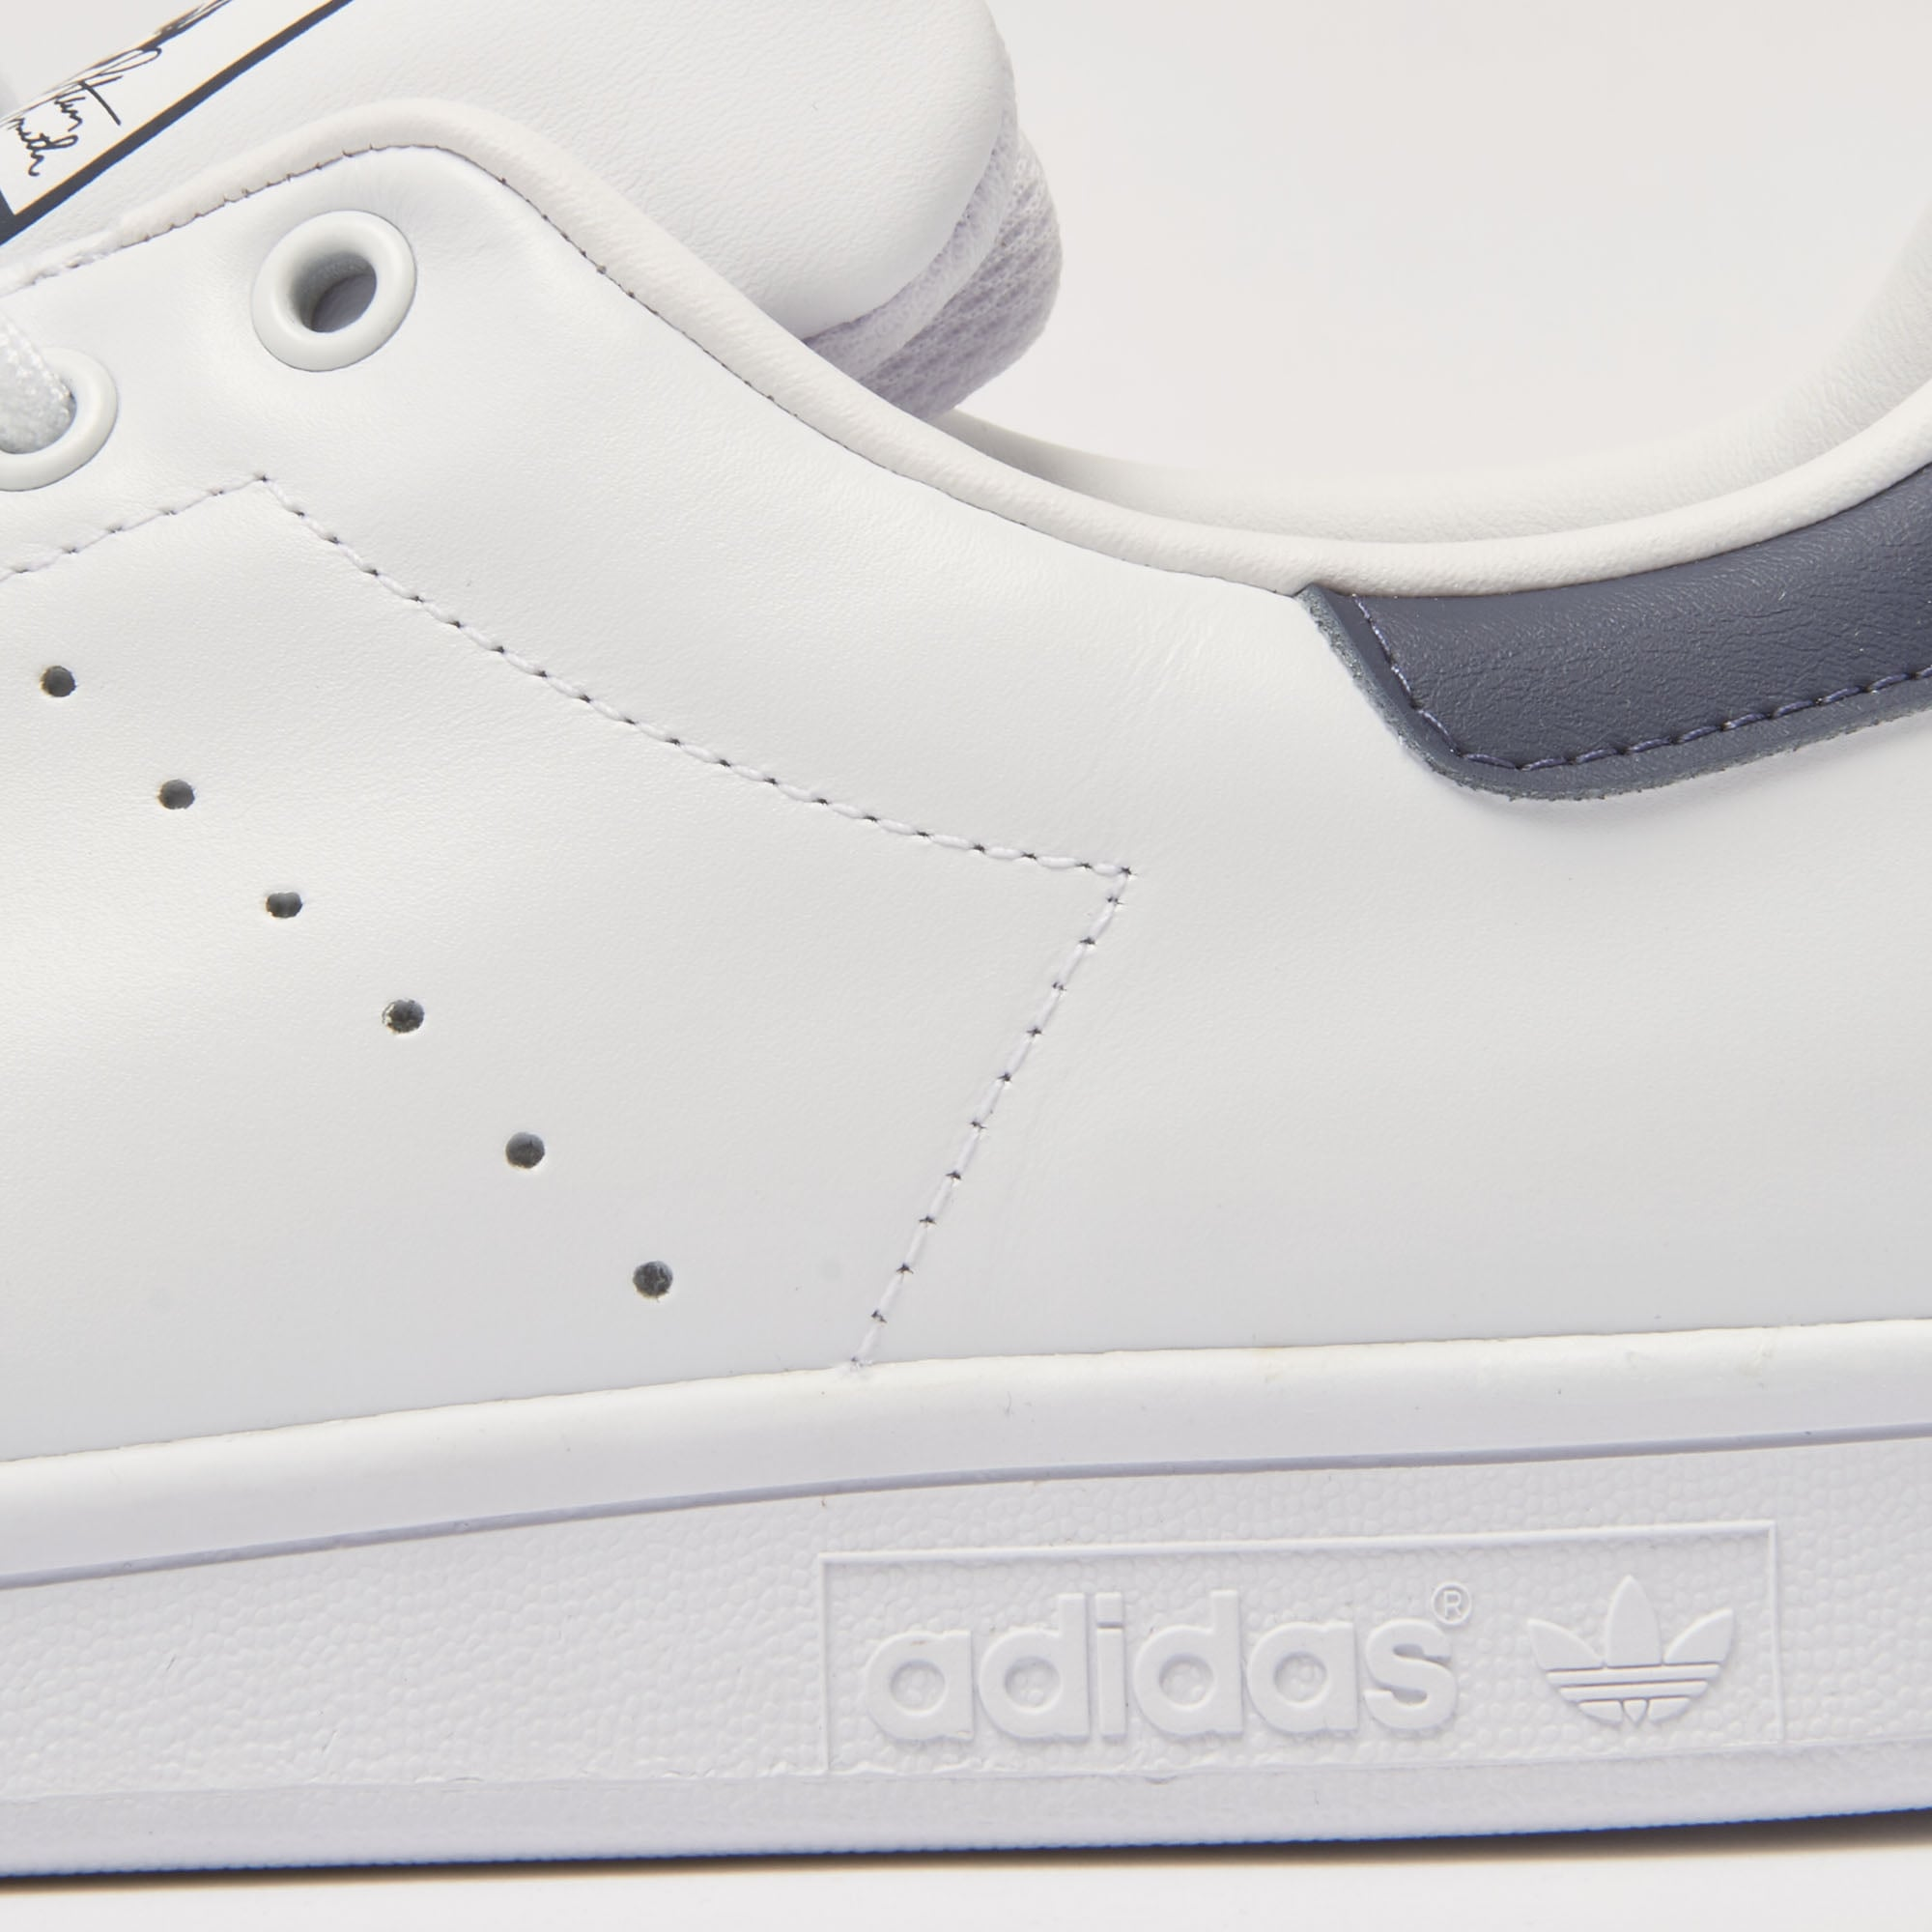 92196dec20c7a2 adidas-originals-white-navy-stan-smiths-sneakers-p30977-109671 image.jpg